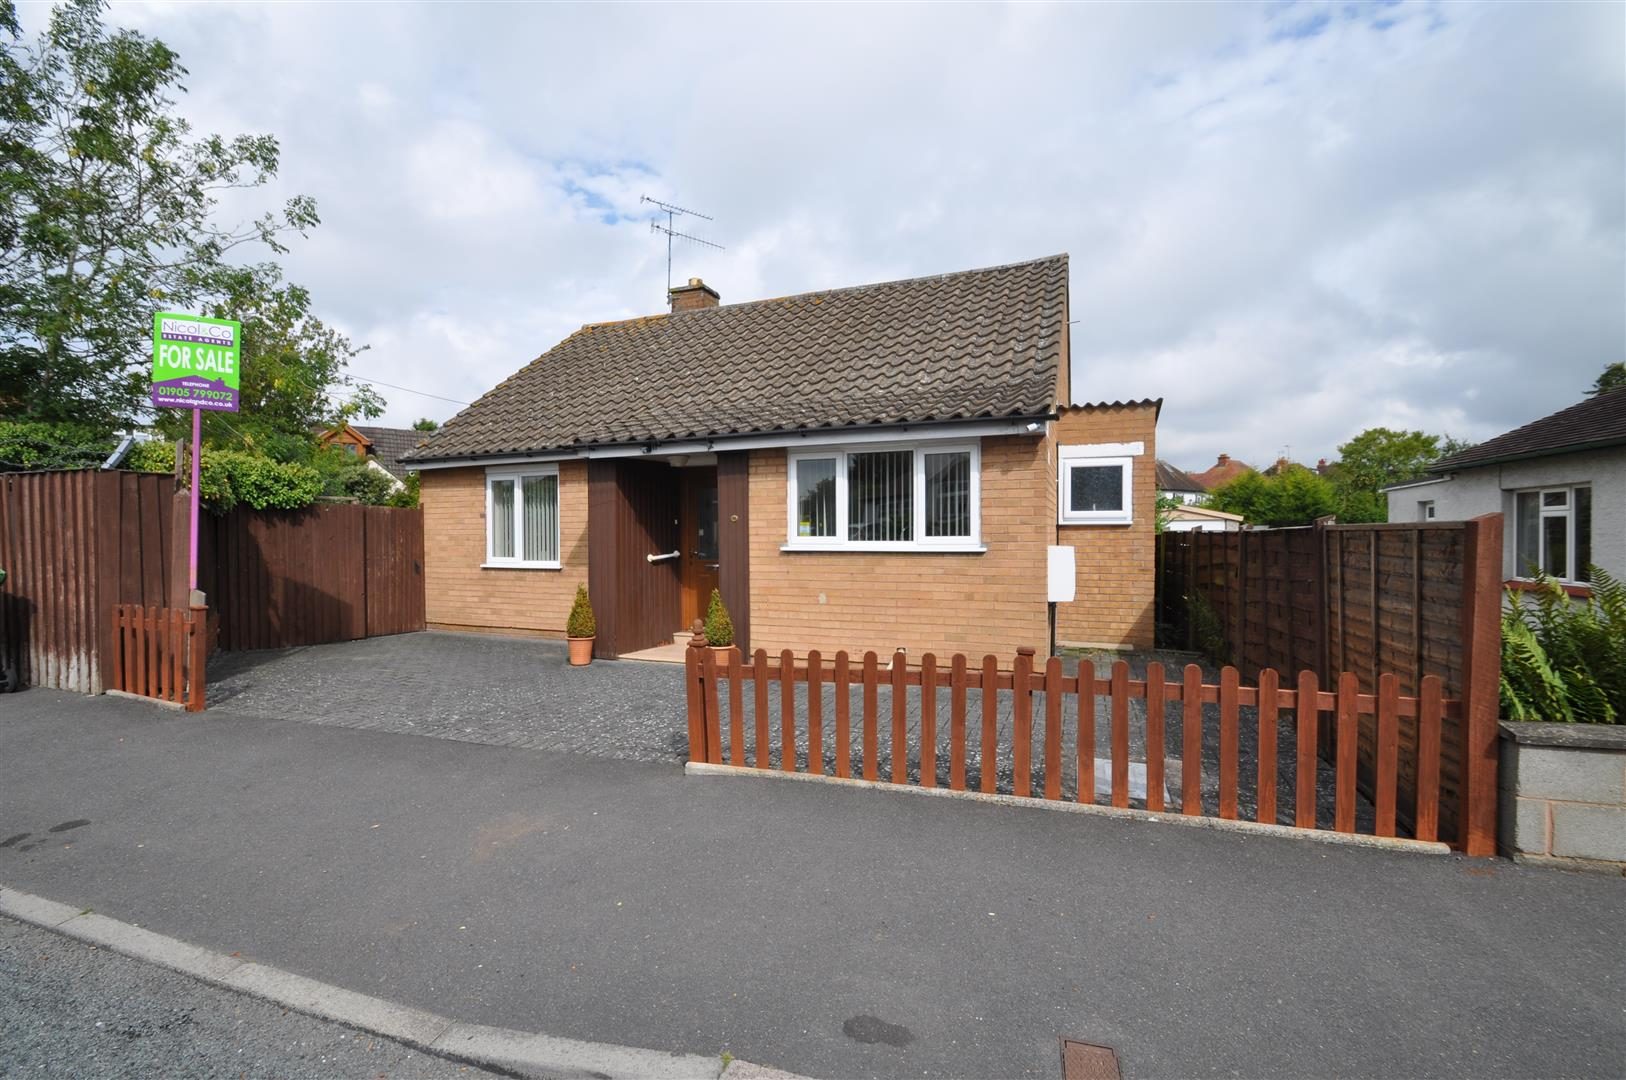 2 Bedrooms Detached Bungalow for sale in Oakland Avenue, Droitwich